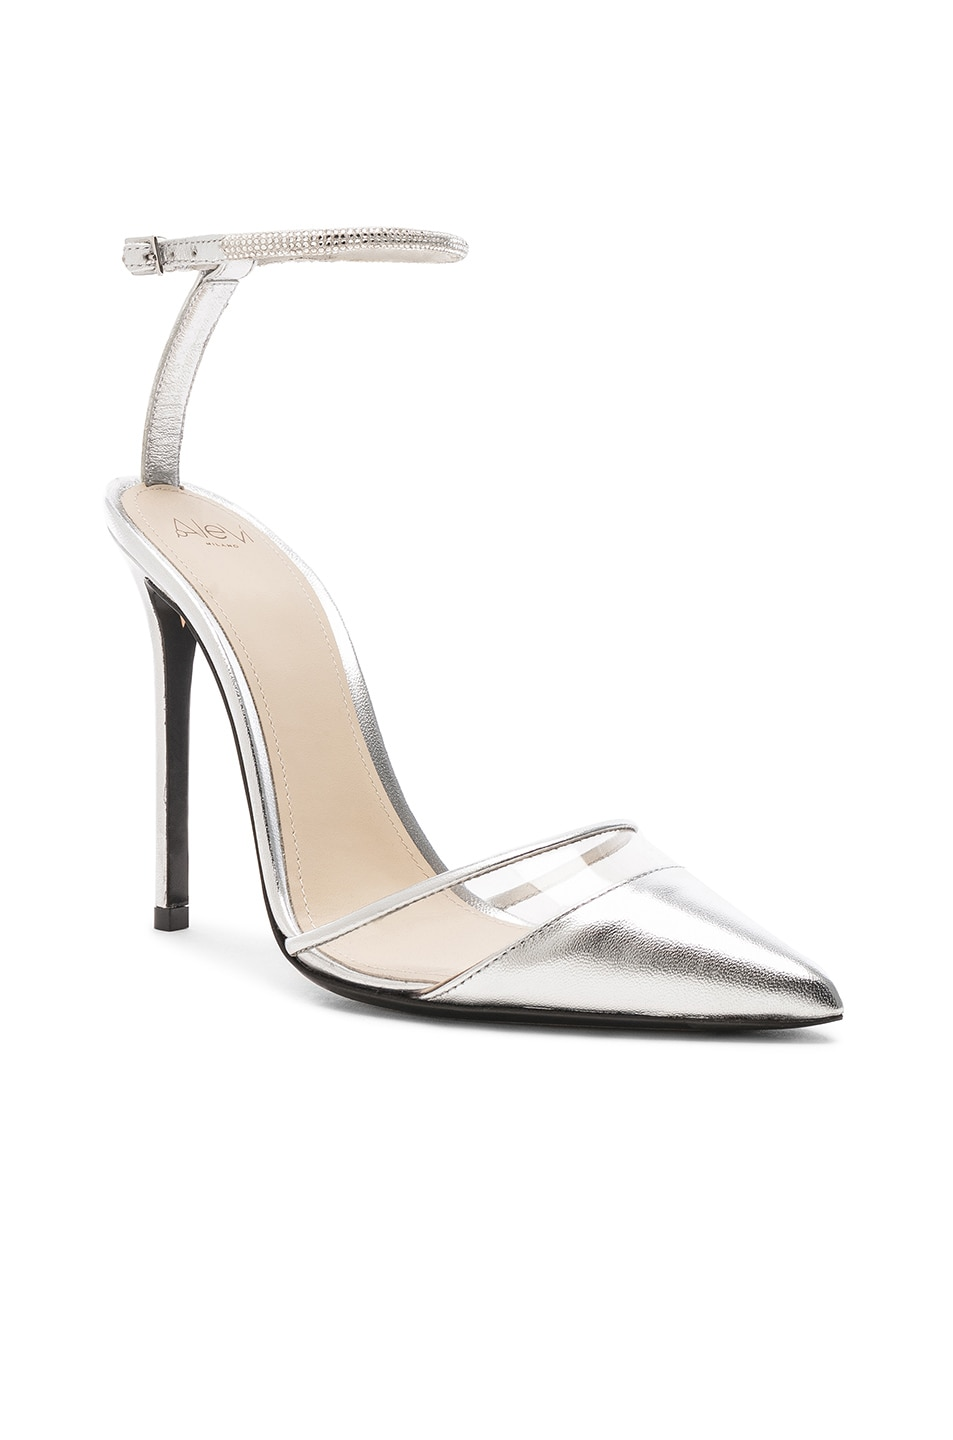 Image 2 of ALEVI Milano Alevi Alice Heel in Shine Silver